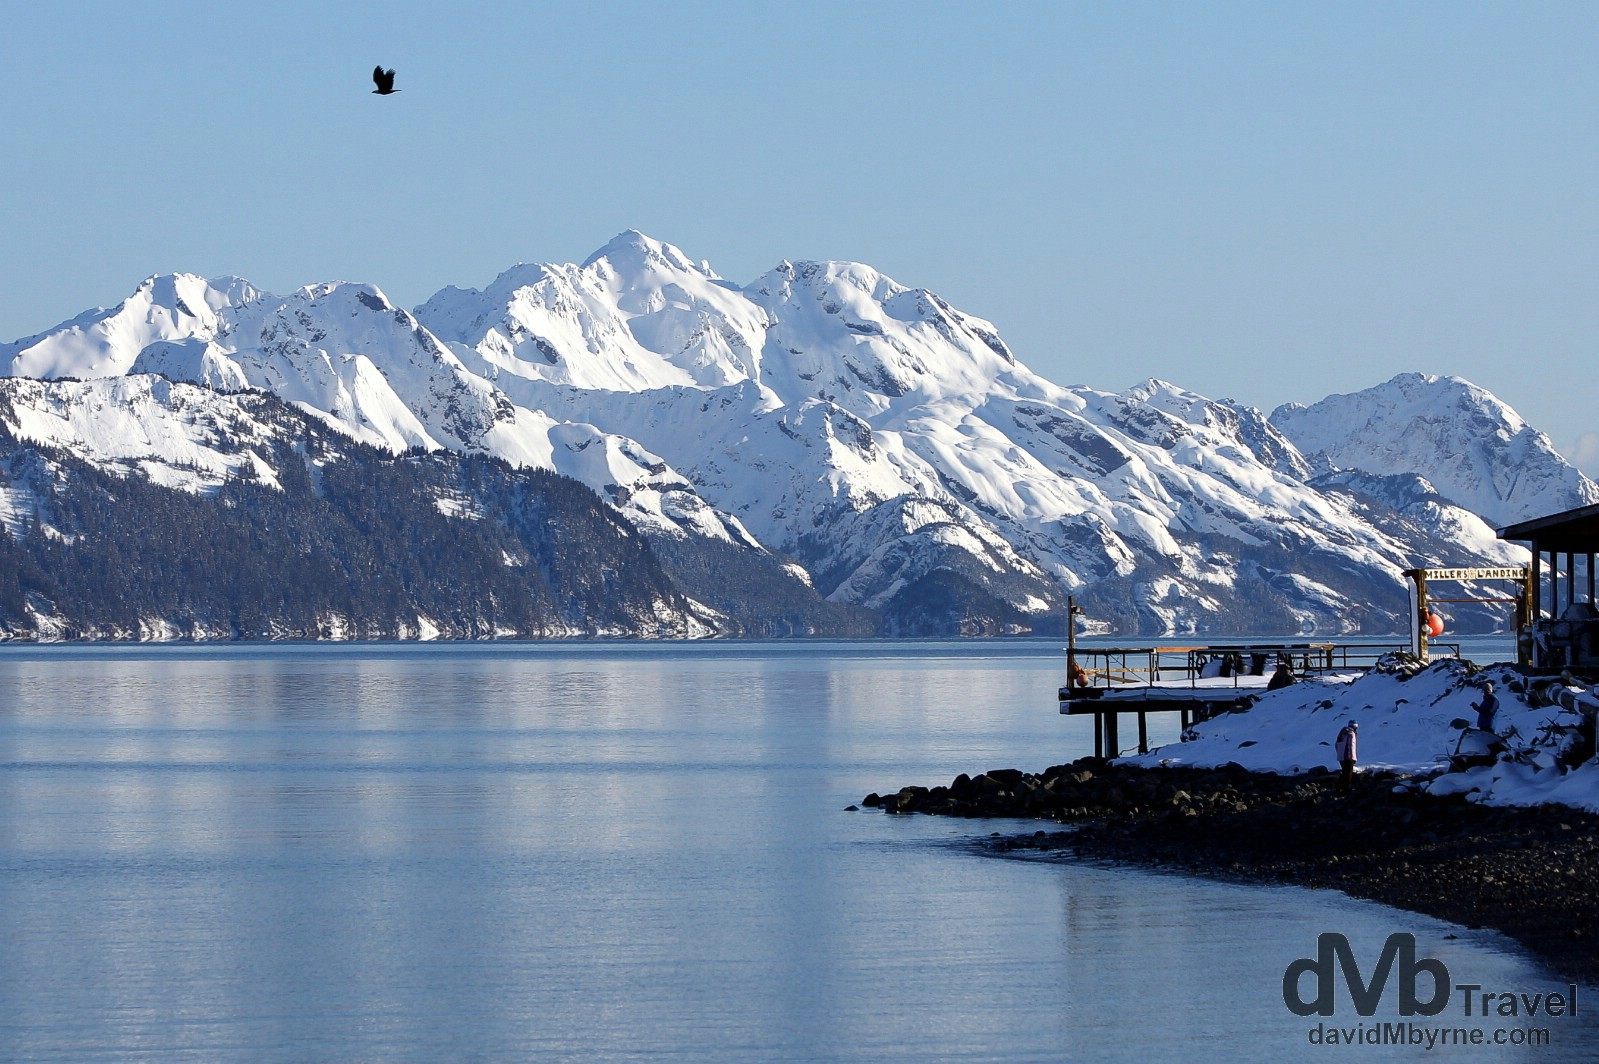 Millers Landing at Lowell Point on Resurrection Bay, Kenai Peninsula, Alaska, USA. March 15th 2013.